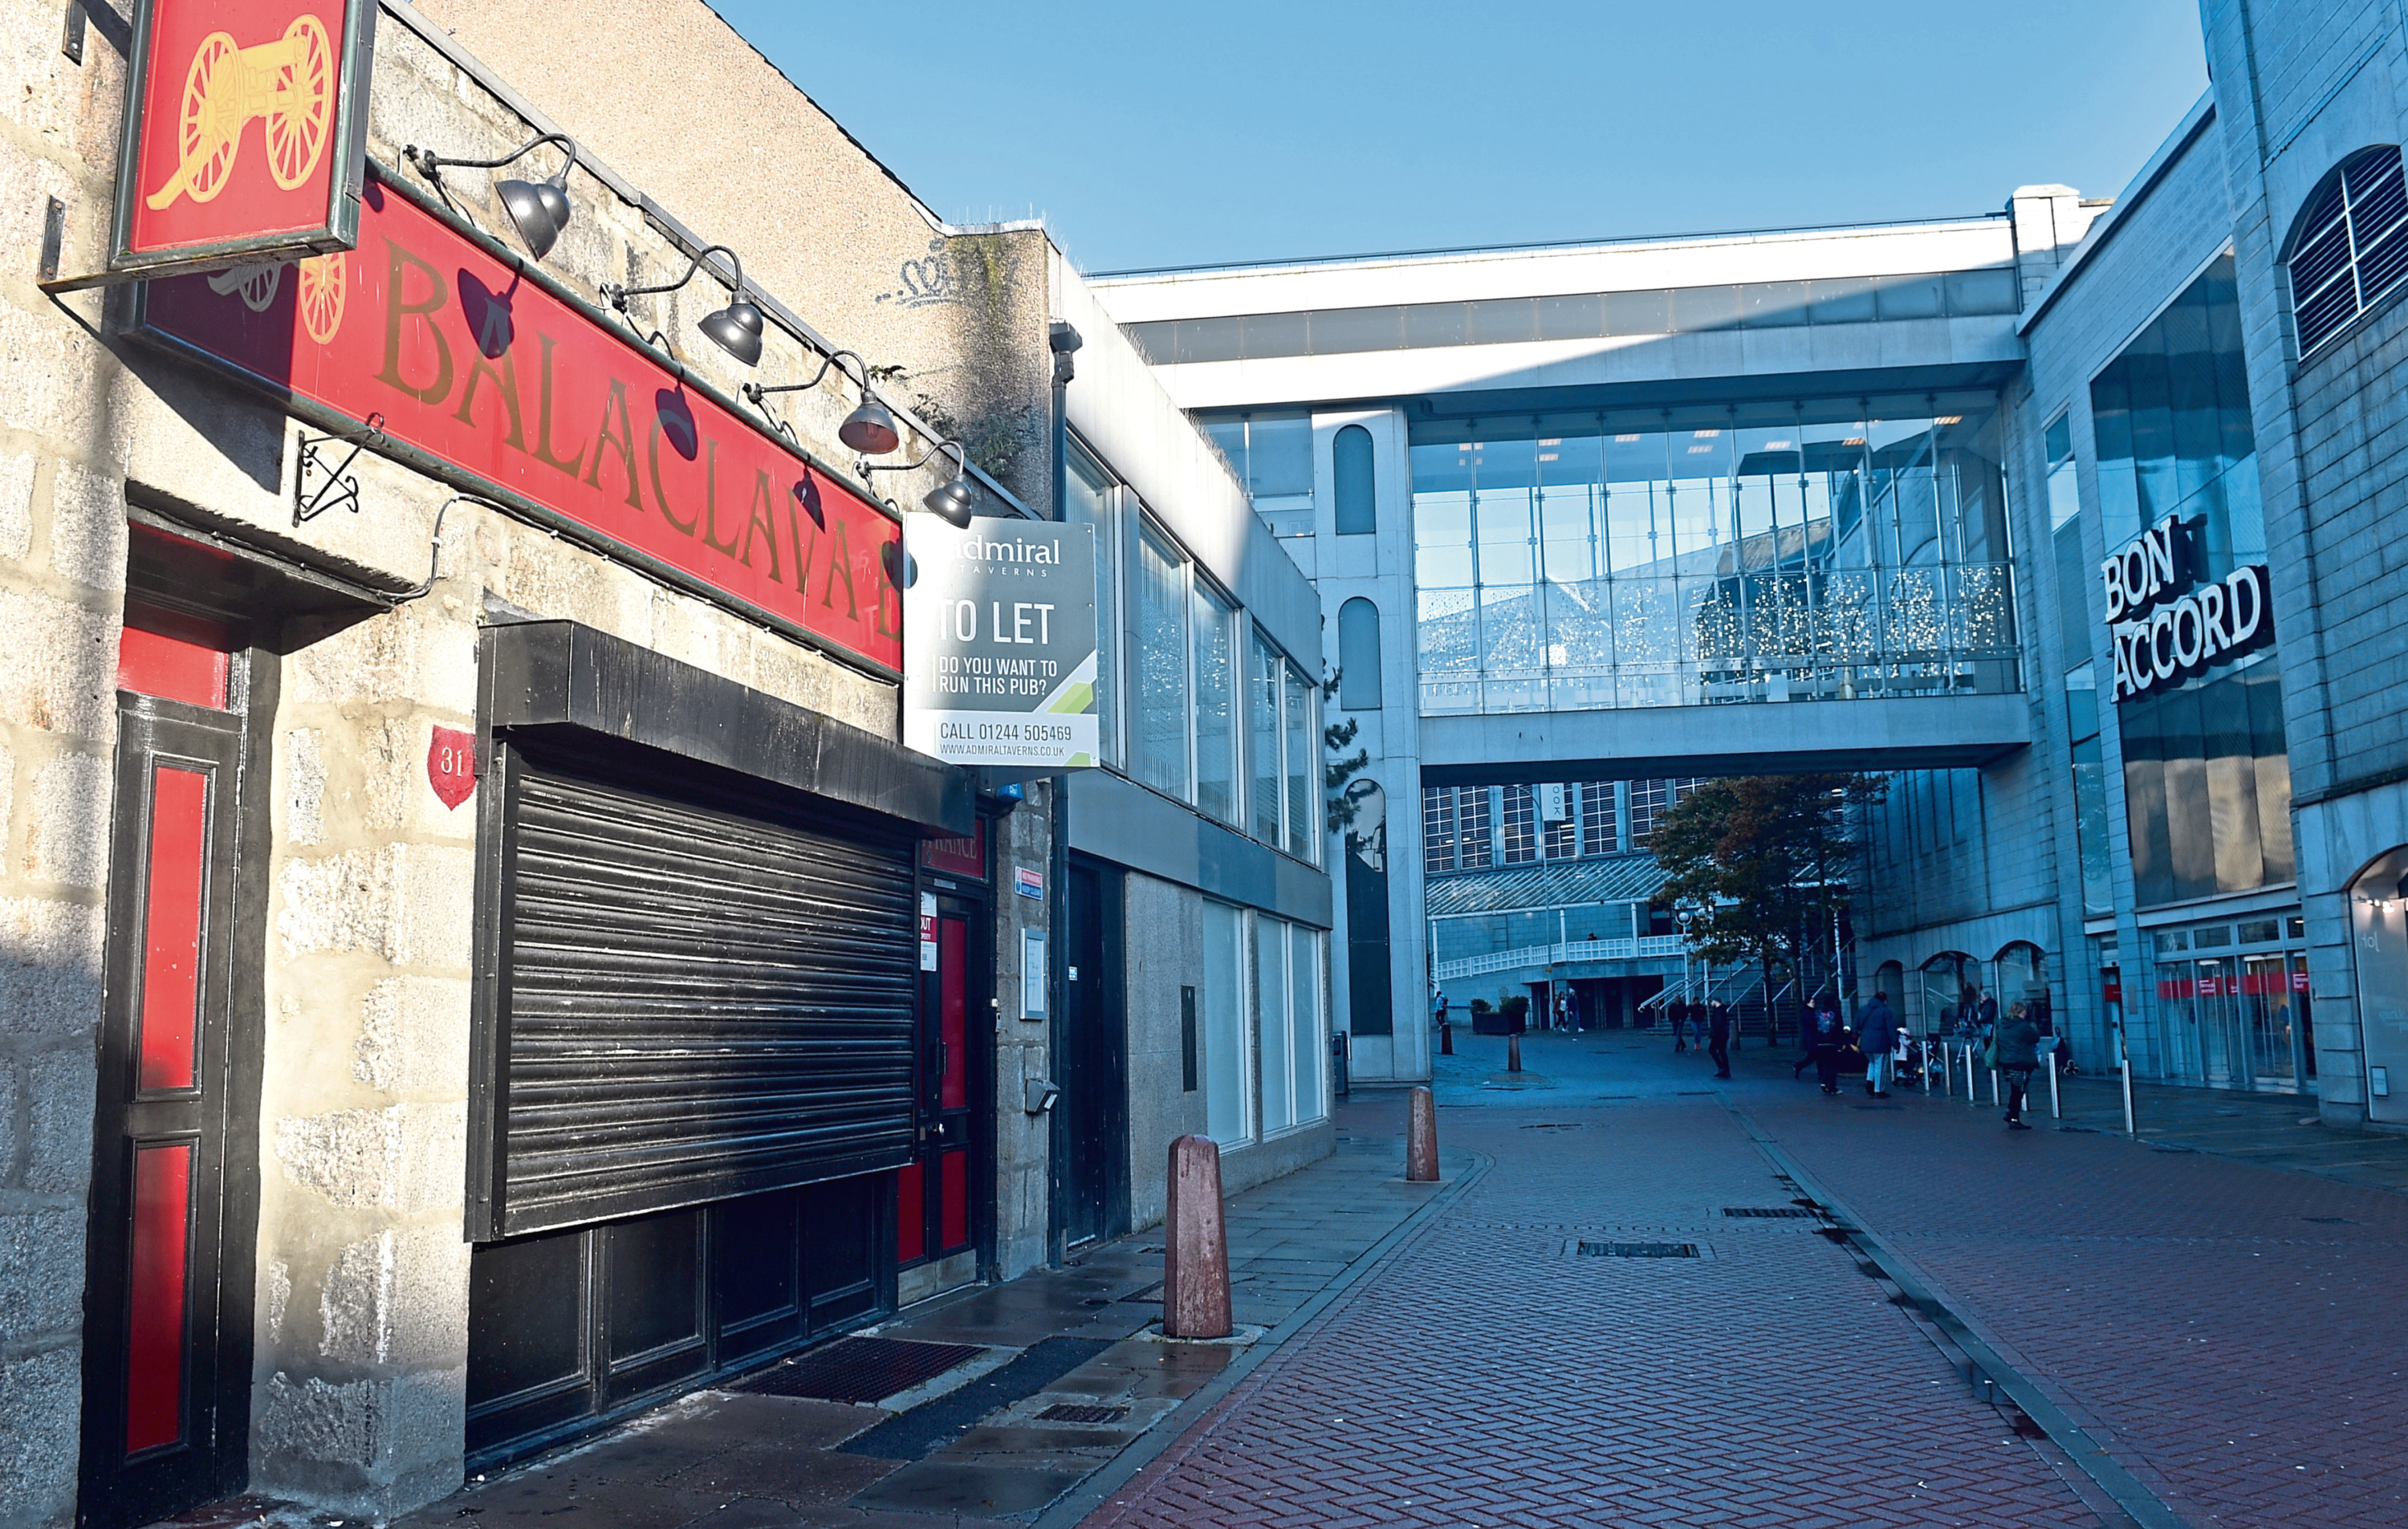 The Balaclava Bar on Loch Street closed its doors in September and the search is on for a new licensee